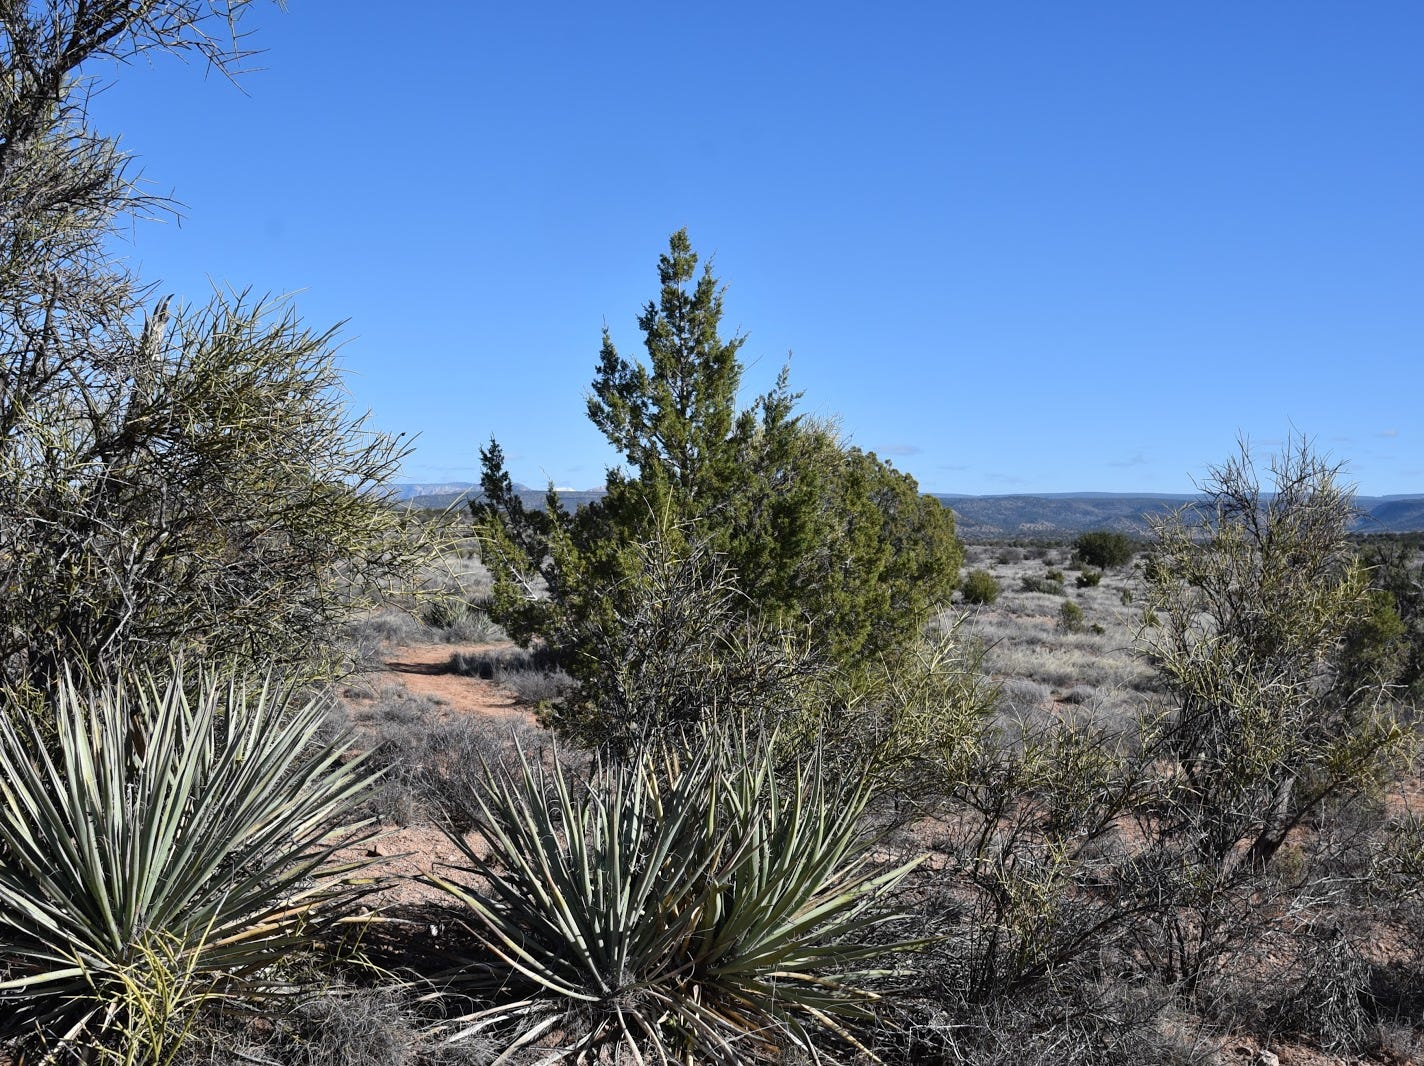 High-desert vegetation on the Cedar Knoll Trail.